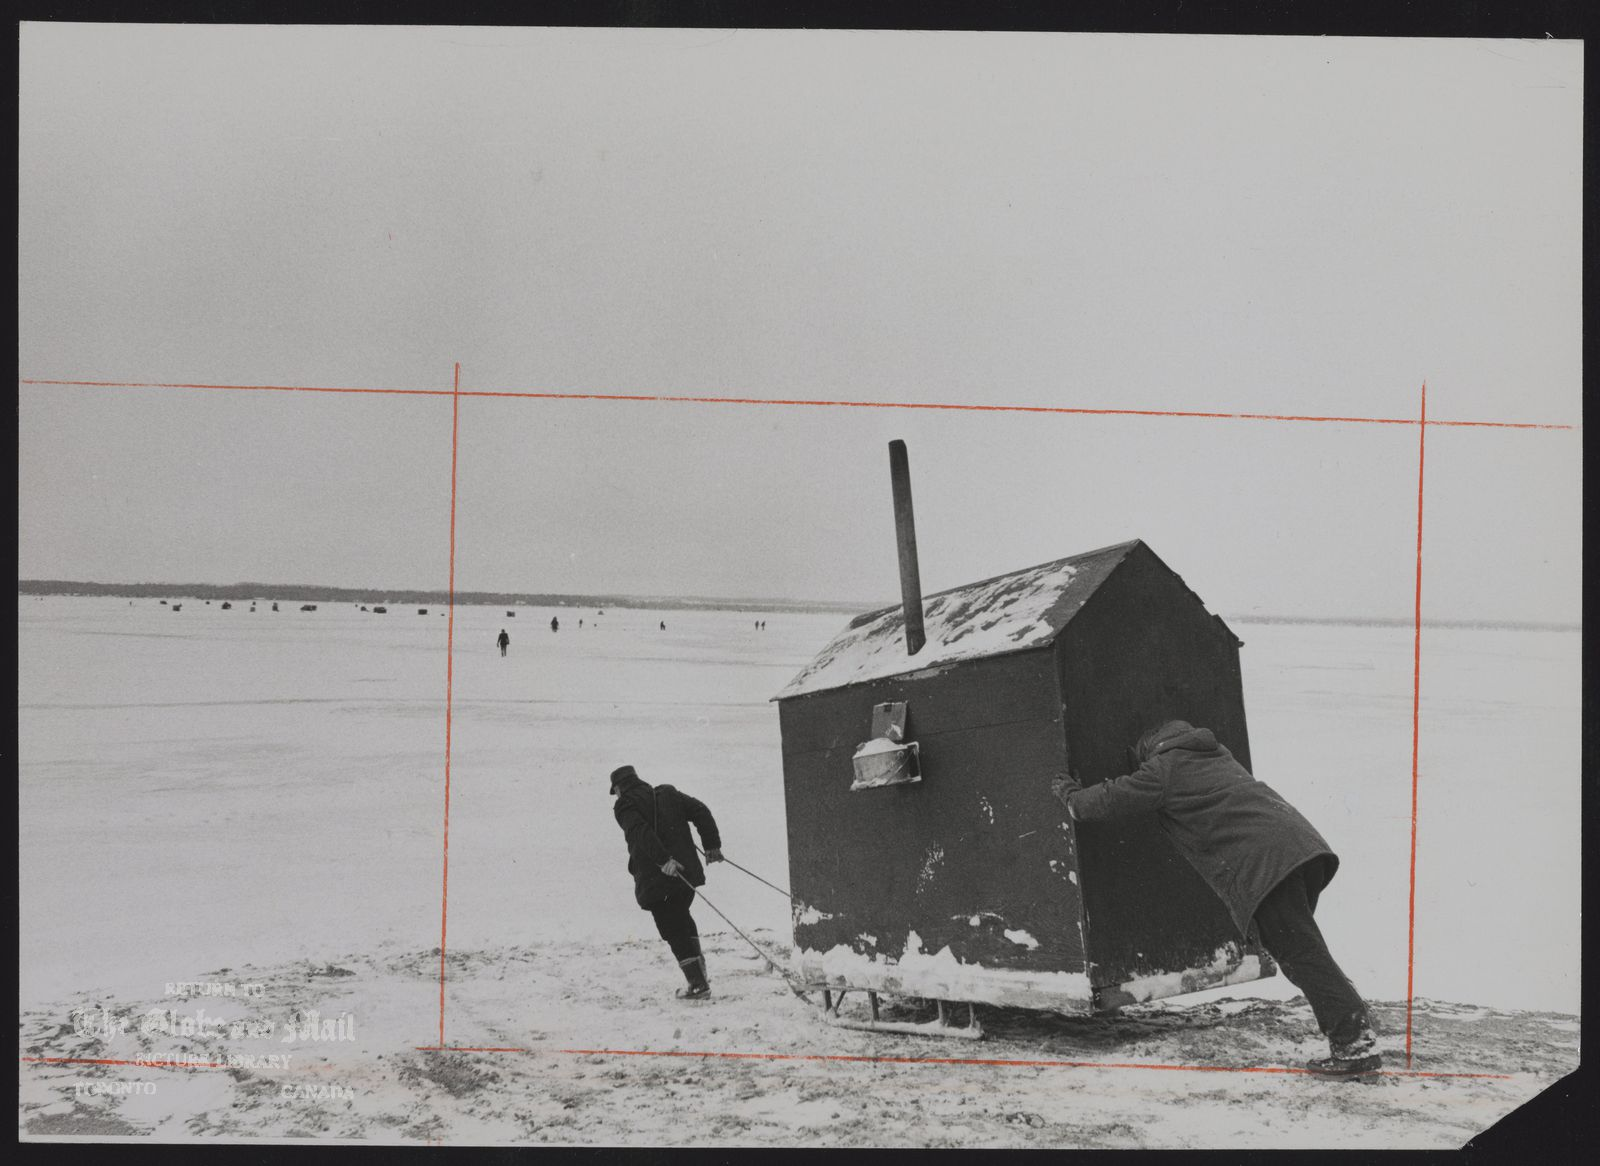 Ice Fishing (Ice hut being hauled by hand since ice is not safe for heavy vehicles,Lake Simcoe at Keswick)